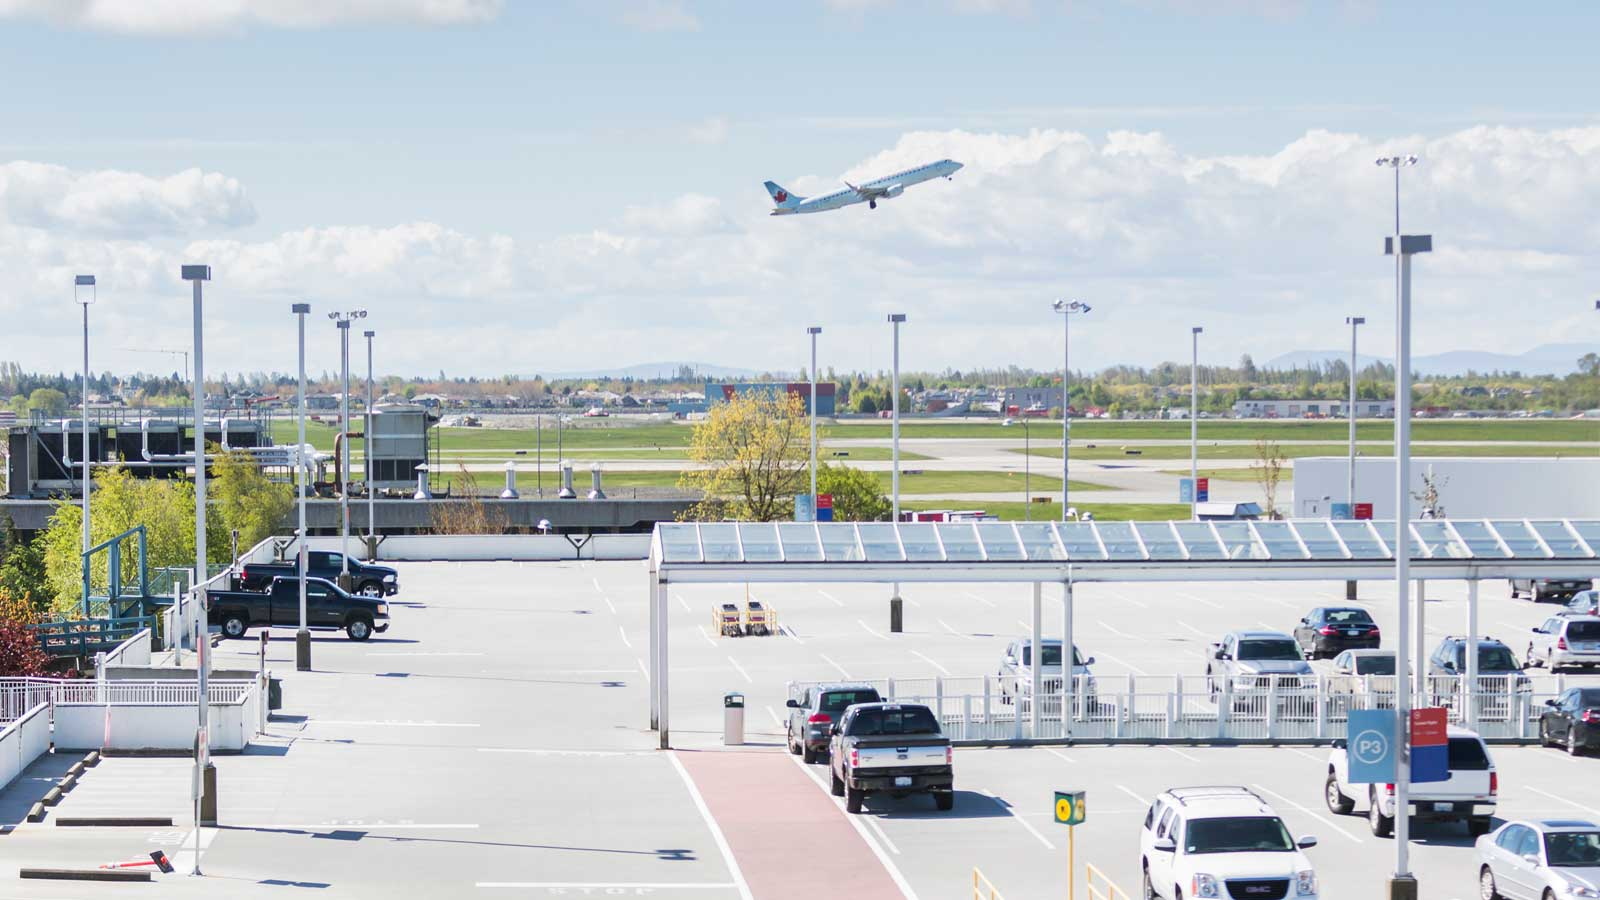 Car park with cars at an airport with plane taking off